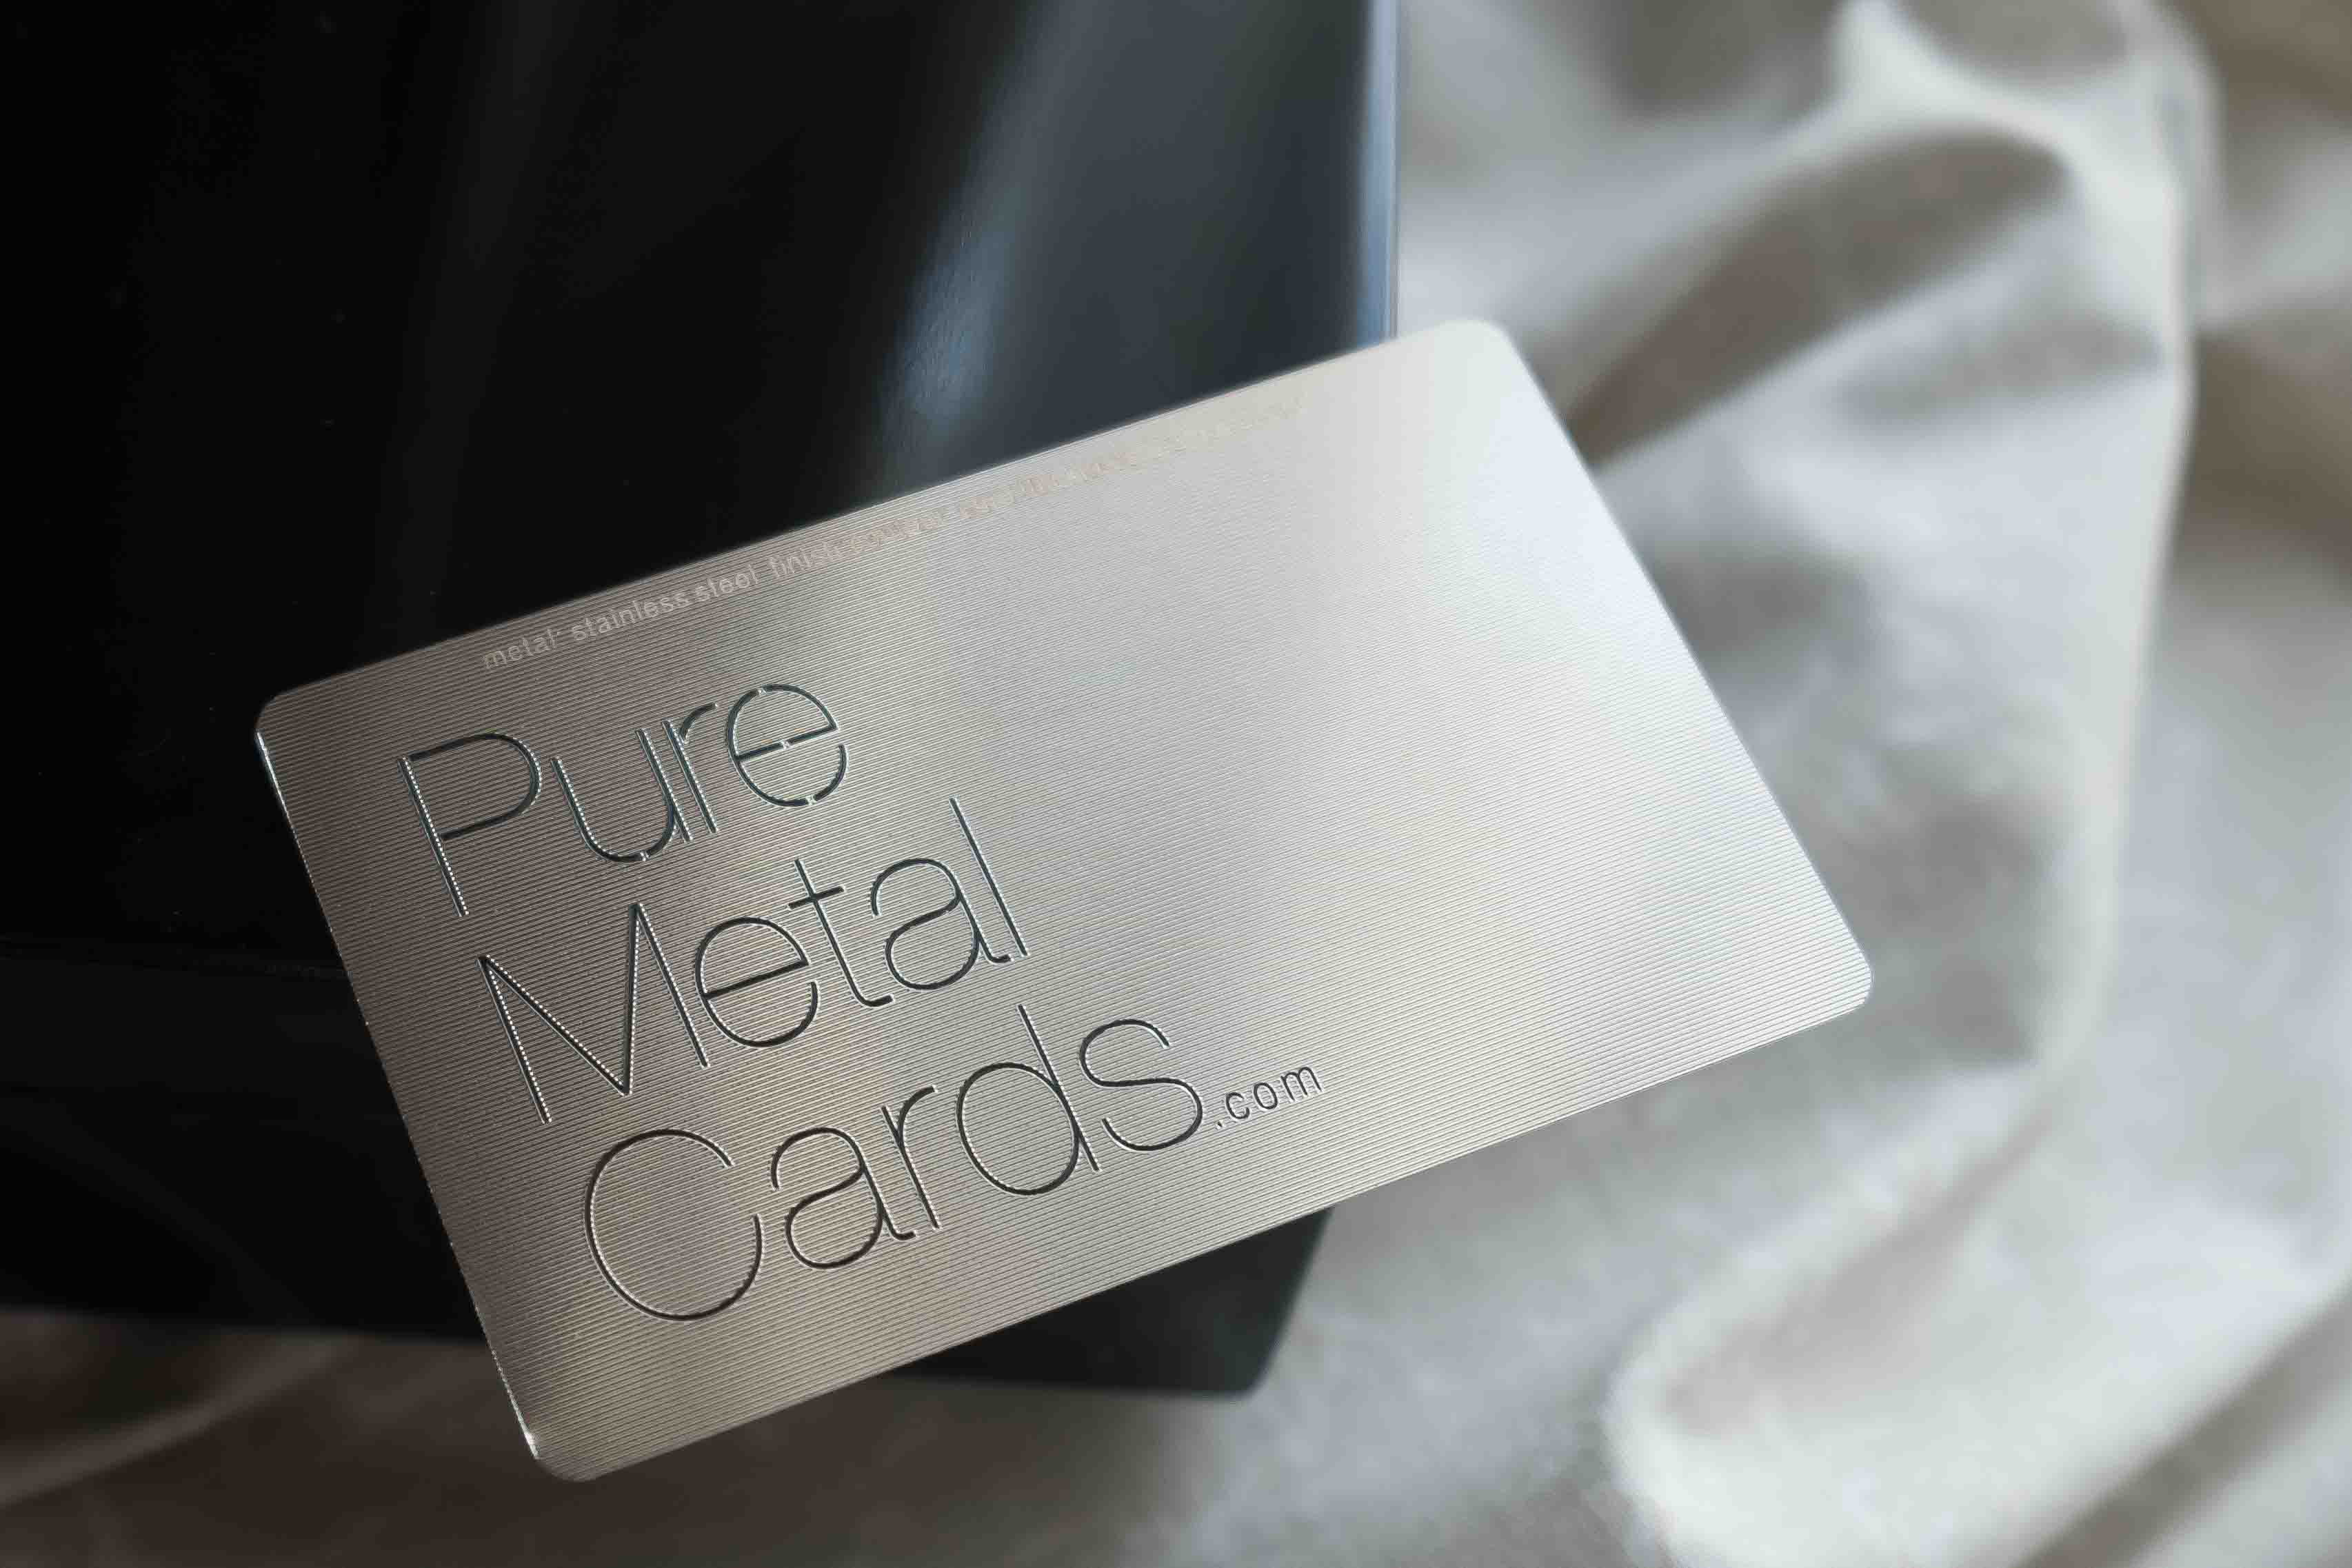 silver contour stainless steel business cards